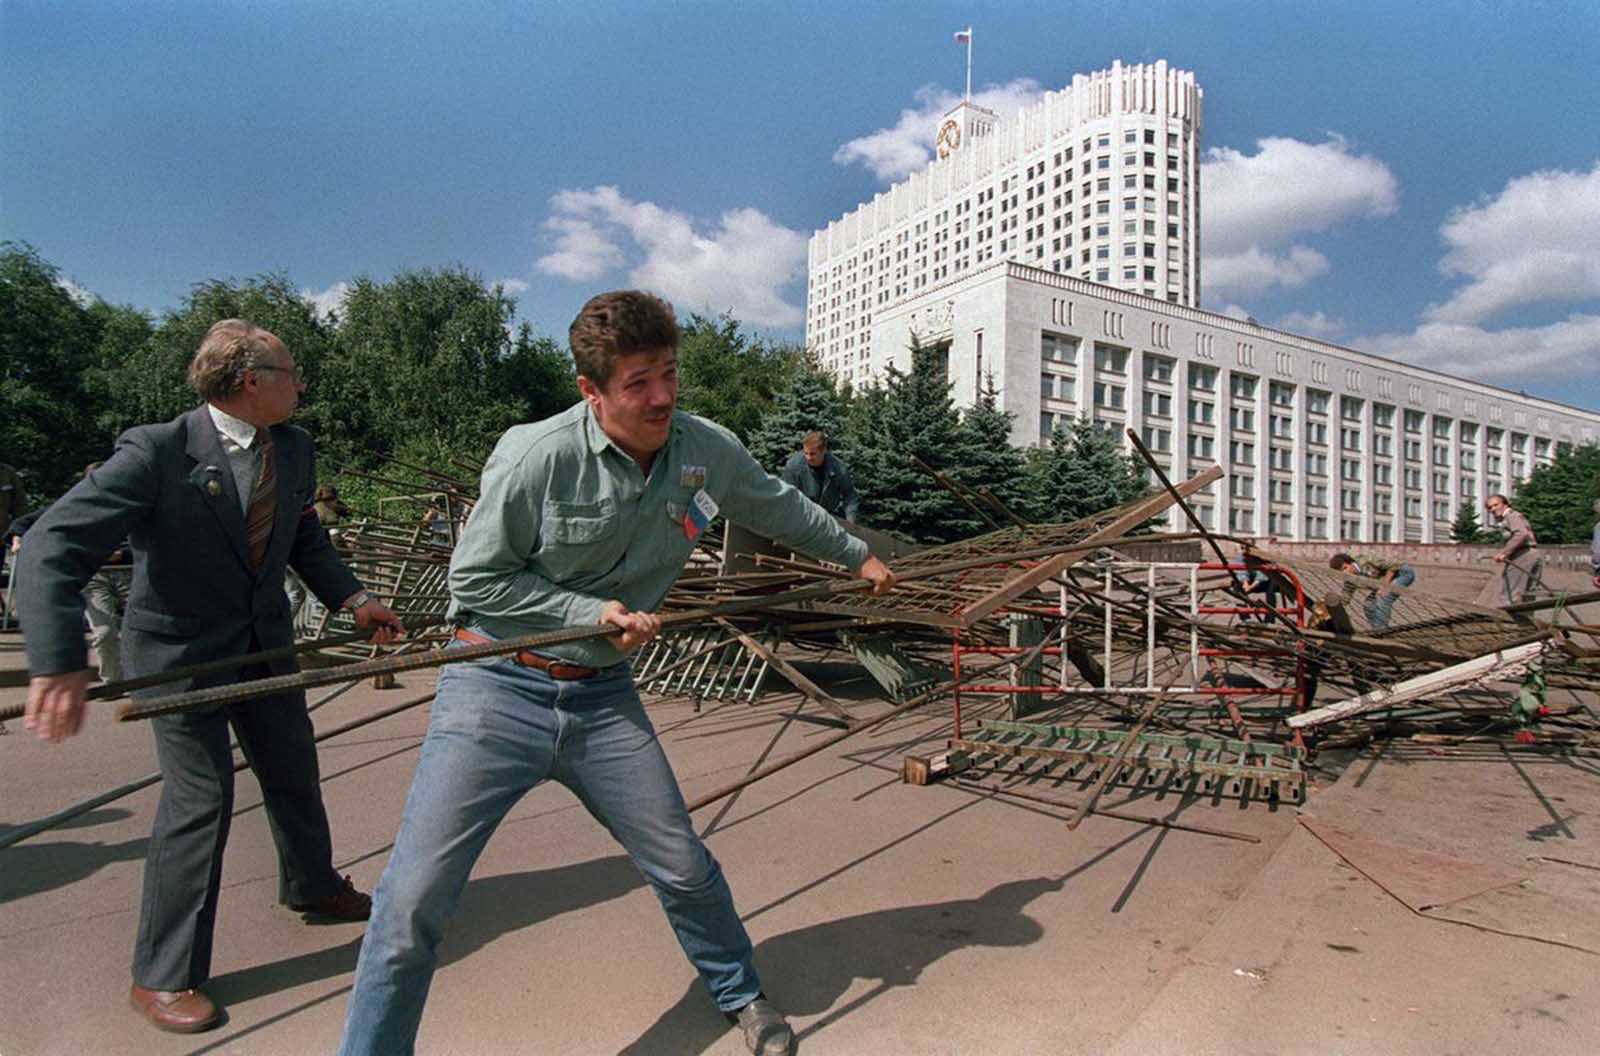 A group of Boris Yeltsin supporters rip apart one of the barricades surrounding the Russian federation building in Moscow, on August 25, 1991, following a coup attempt a few days before that eventually failed.